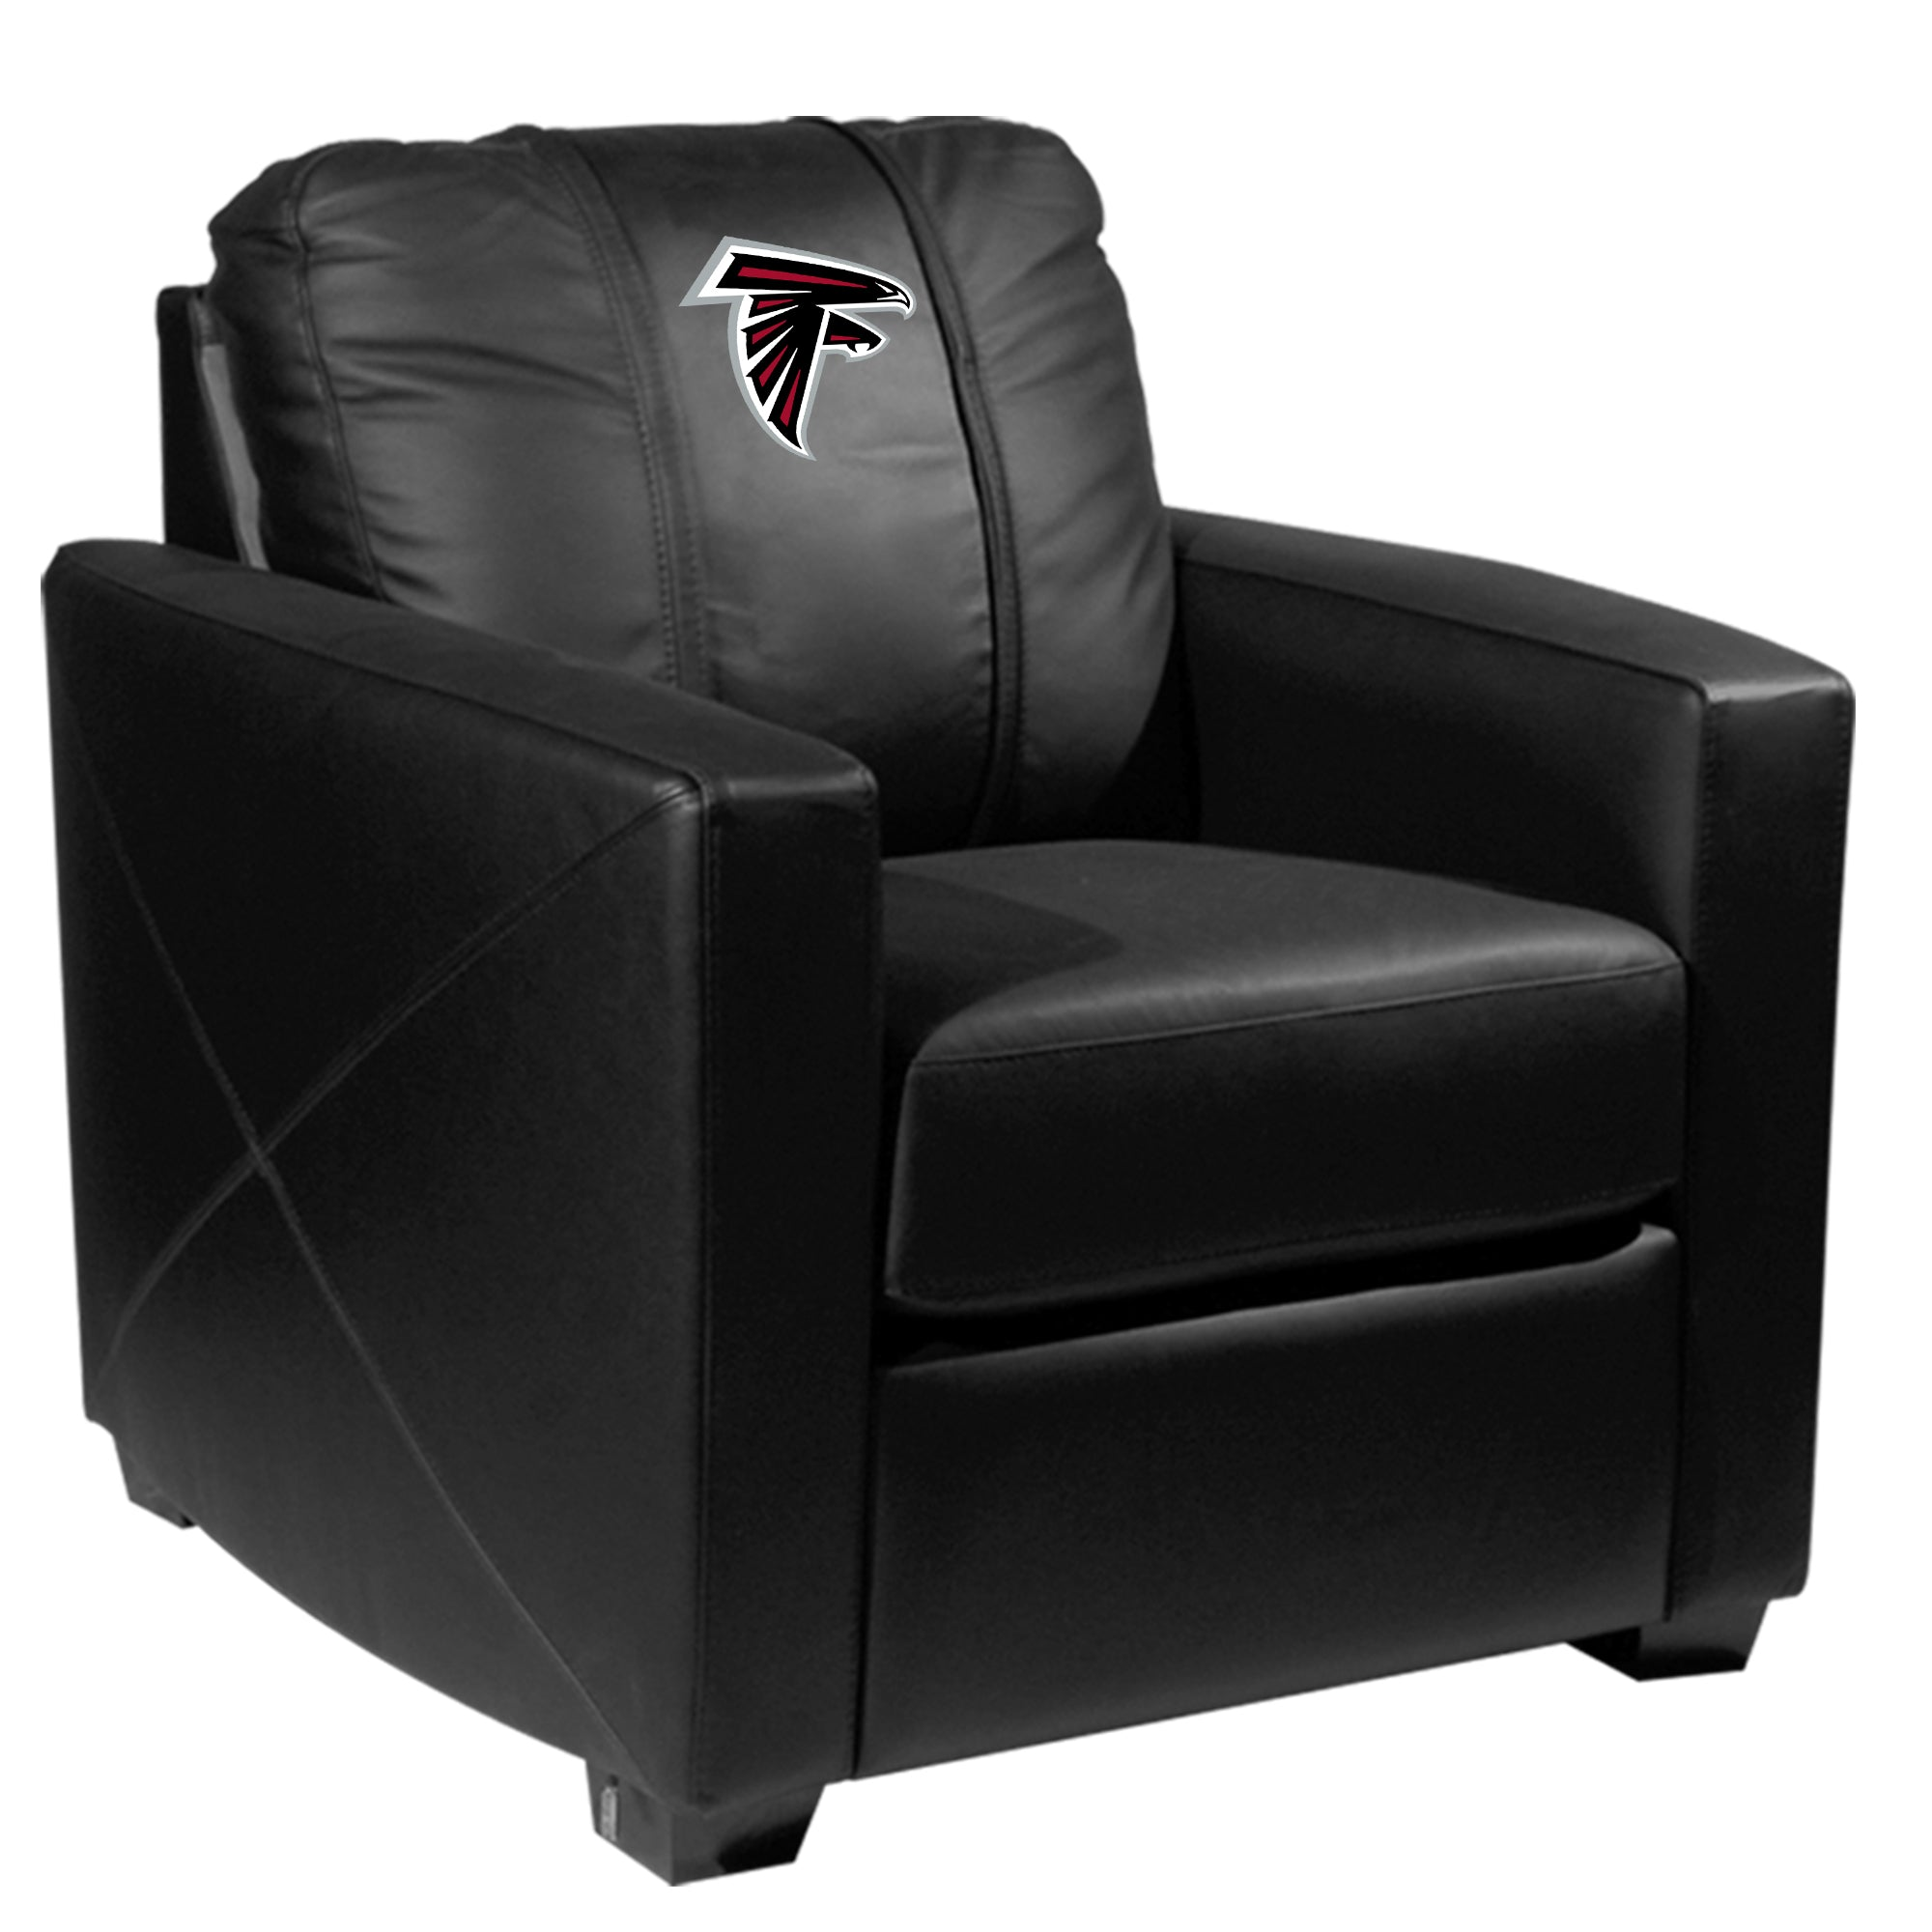 Silver Club Chair with Atlanta Falcons Primary Logo